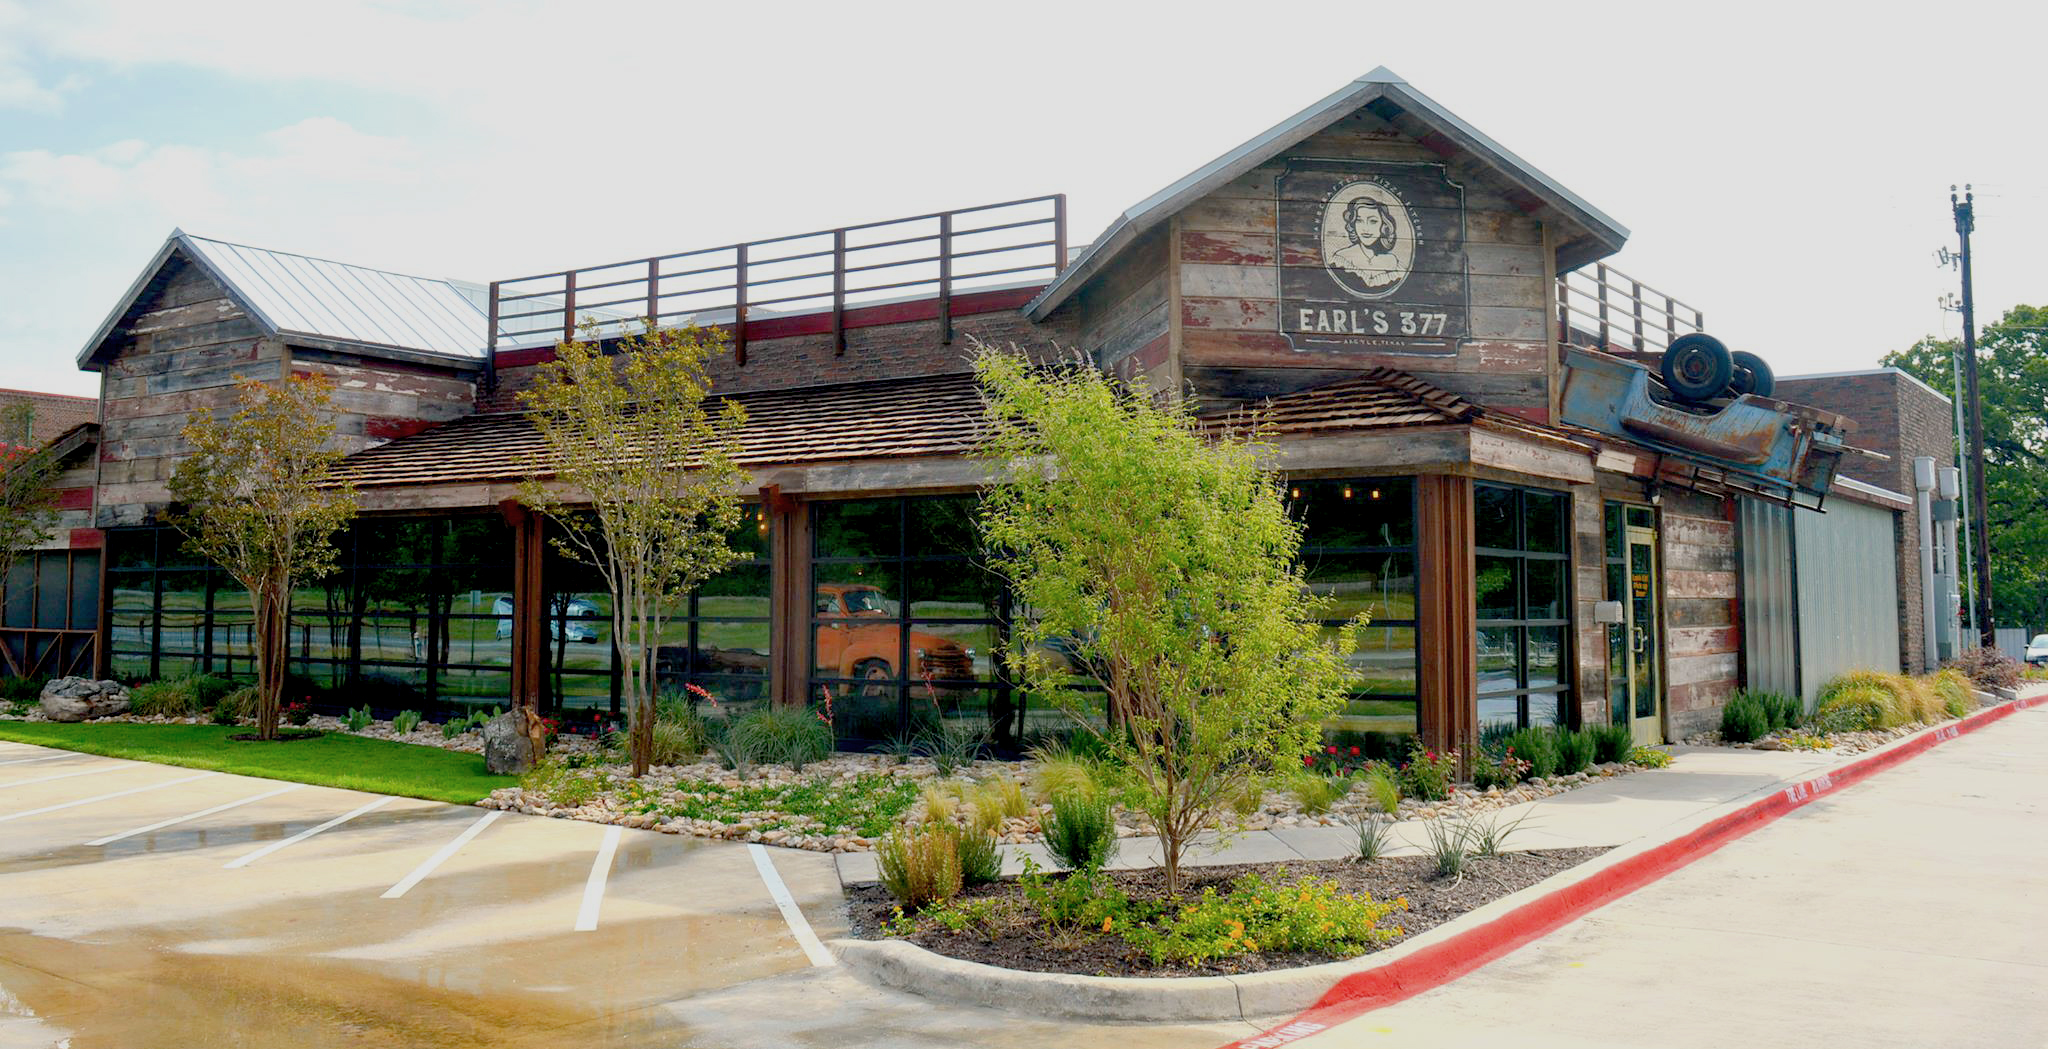 Earl's 377 Pizza - Opening in Argyle, Texas Summer 2016